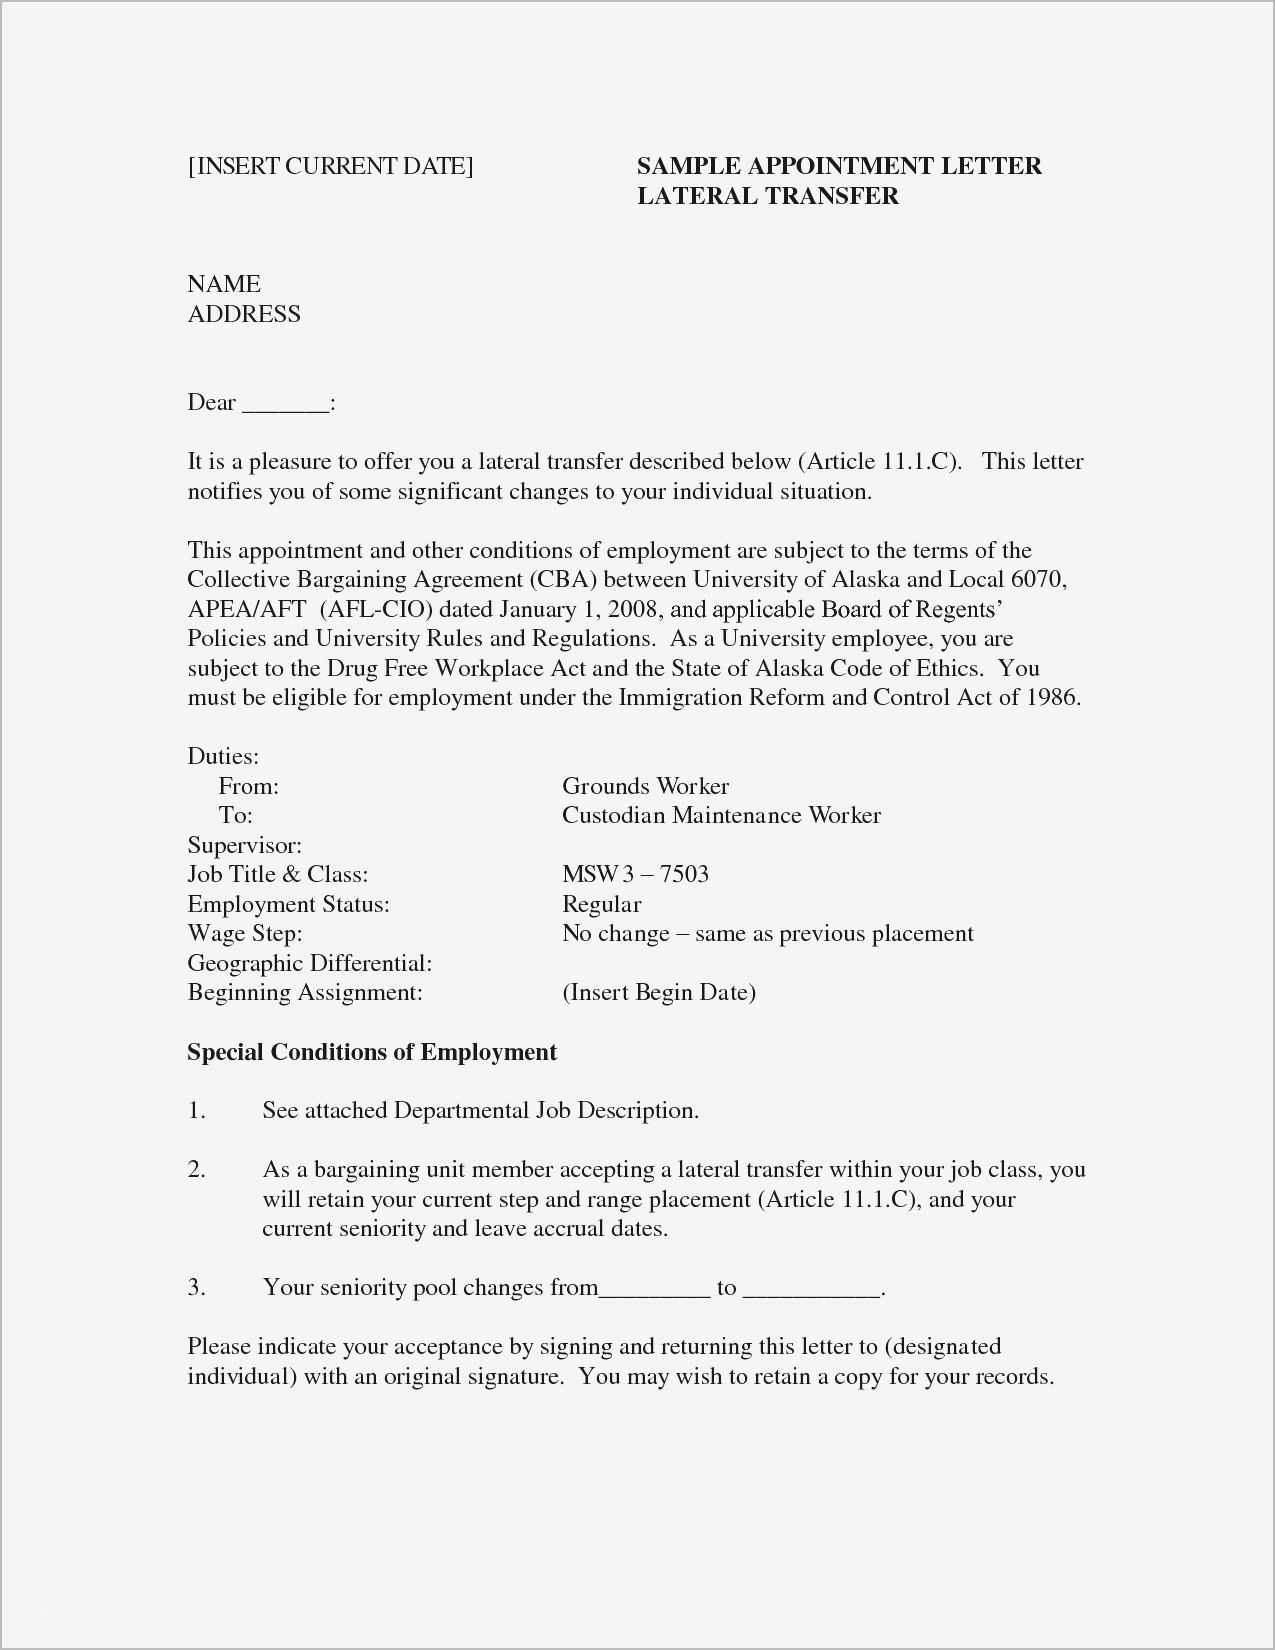 Dancer Resume Template Free - Dancer Resume Template New Dance Resume Examples Inspirational Dance